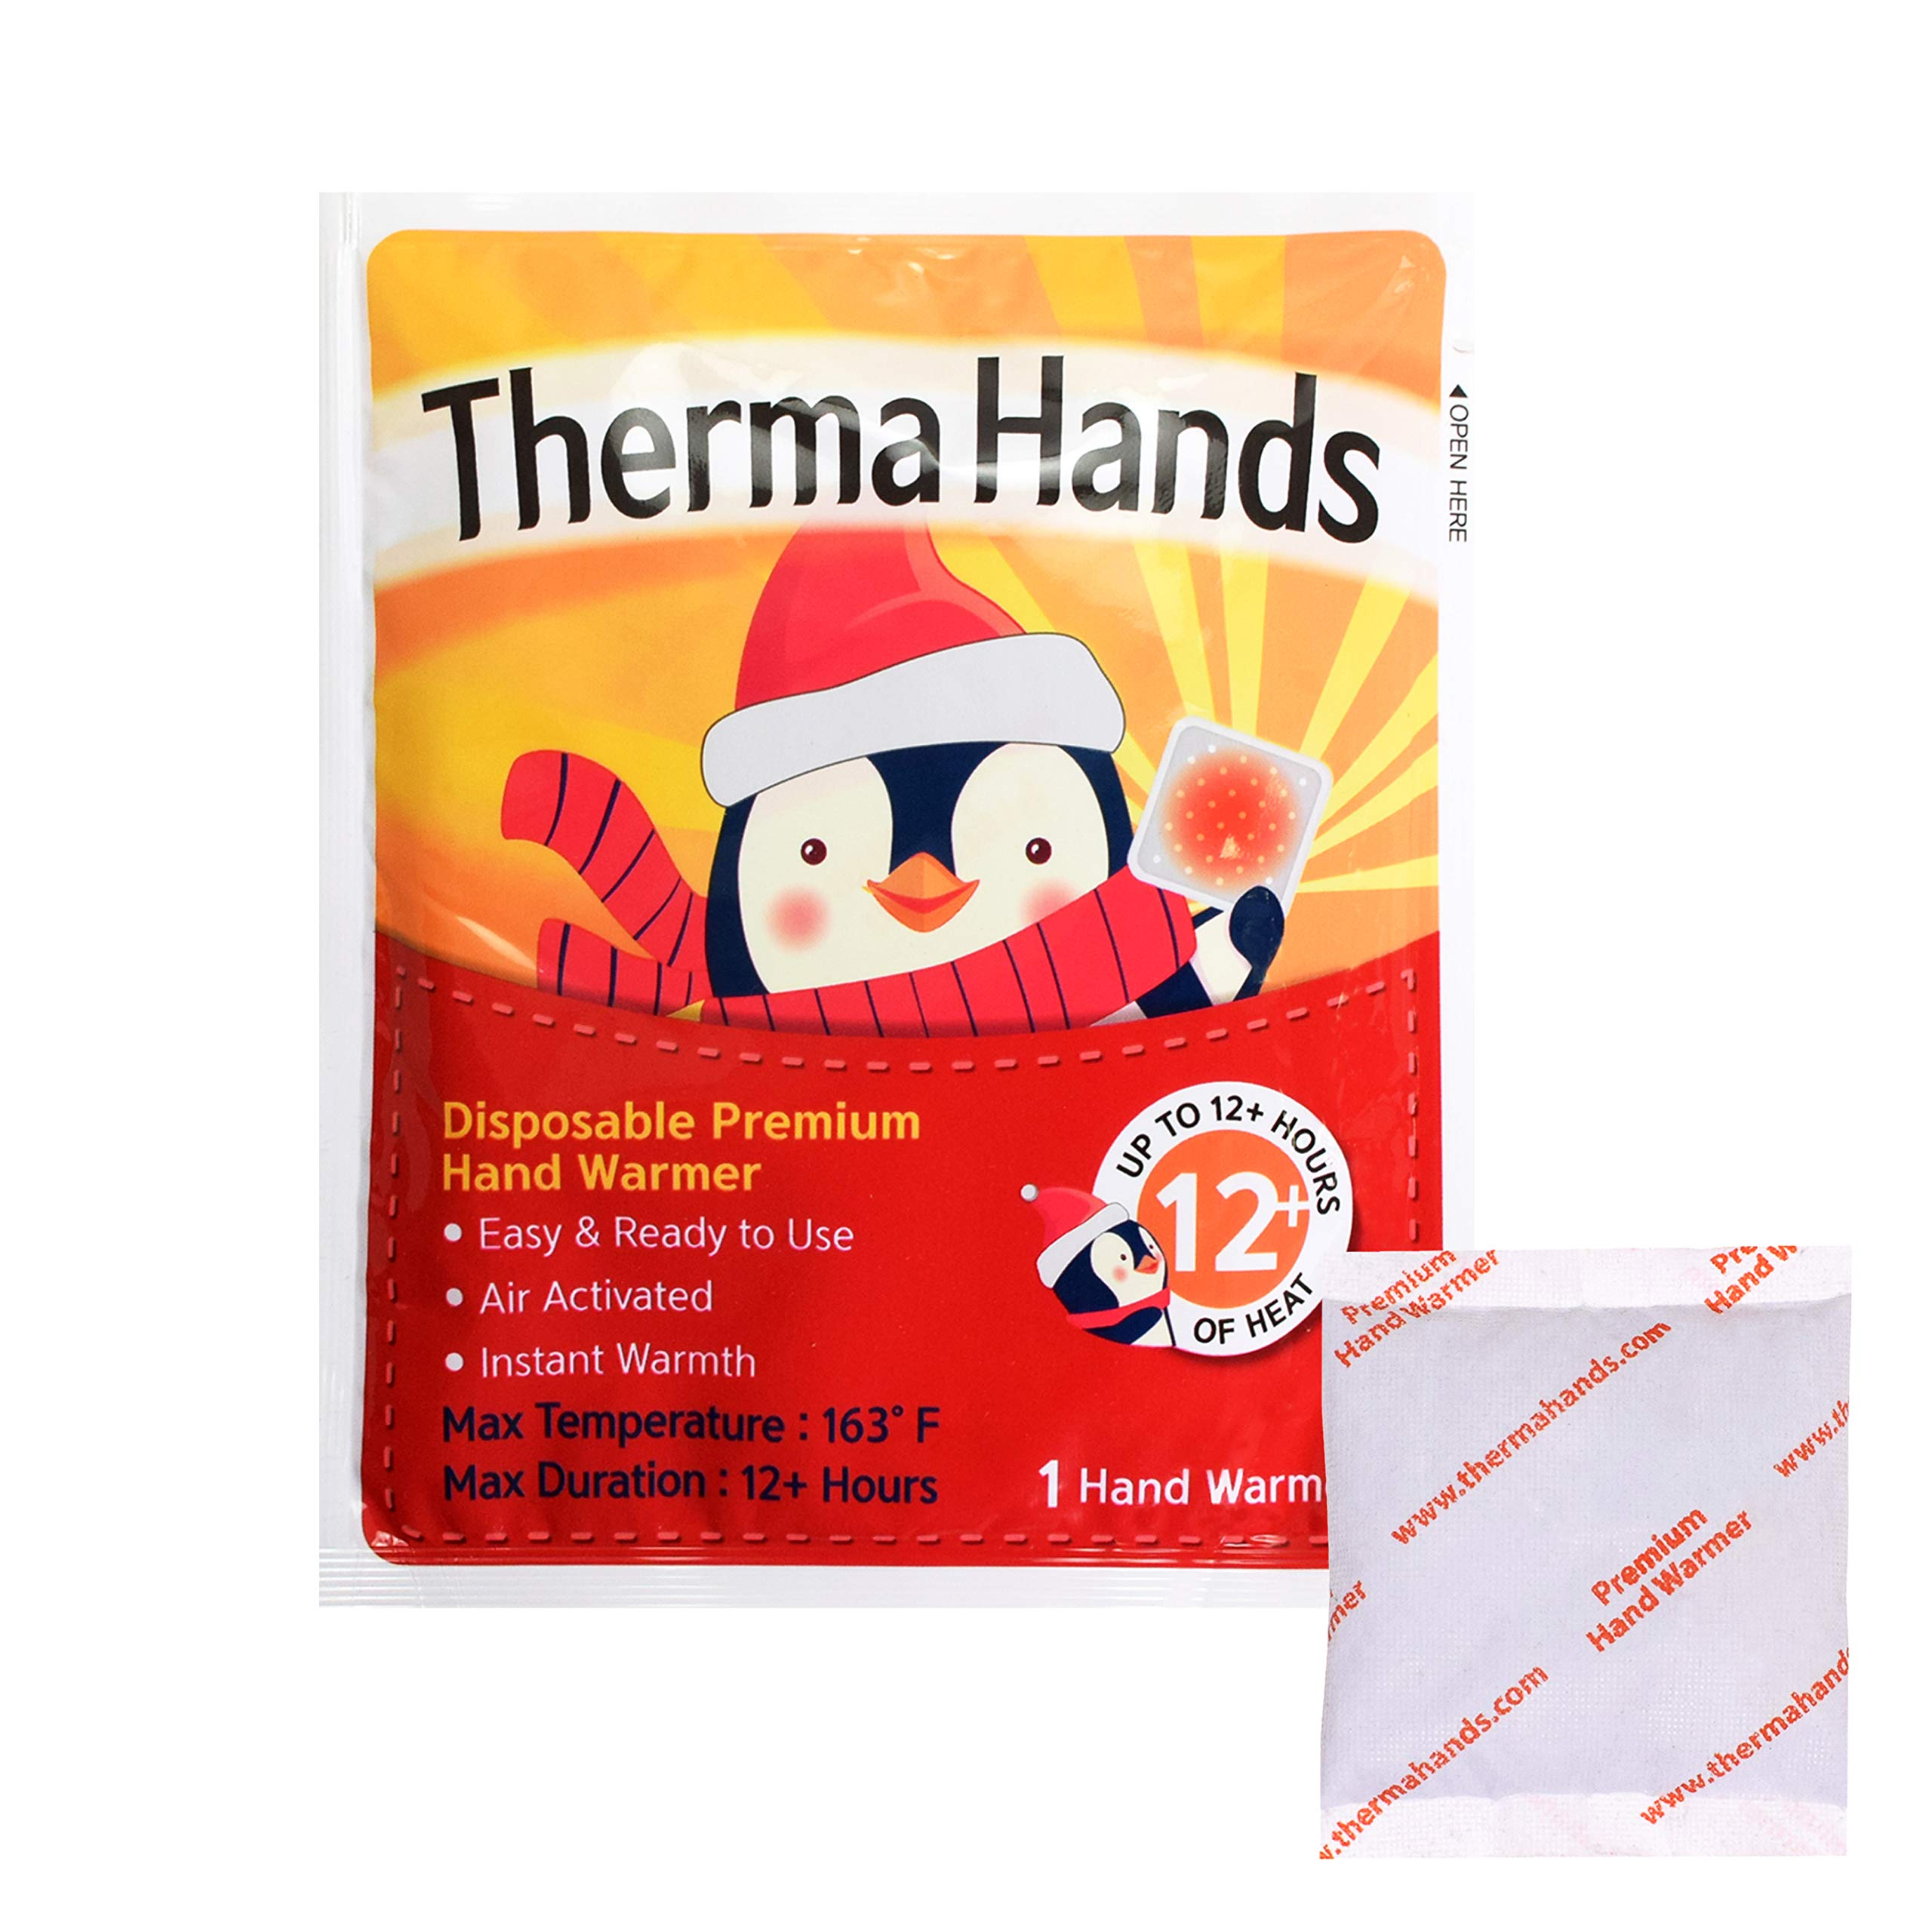 ThermaHands Hand Warmers (360 Packs) - Premium Quality (Size: 3.5 inch x 4 inch, Duration: 12+ Hours, Max Temp: 163 F) Air-Activated, Convenient, Safe, Natural, Odorless, Long Lasting Warmers by ThermaHands